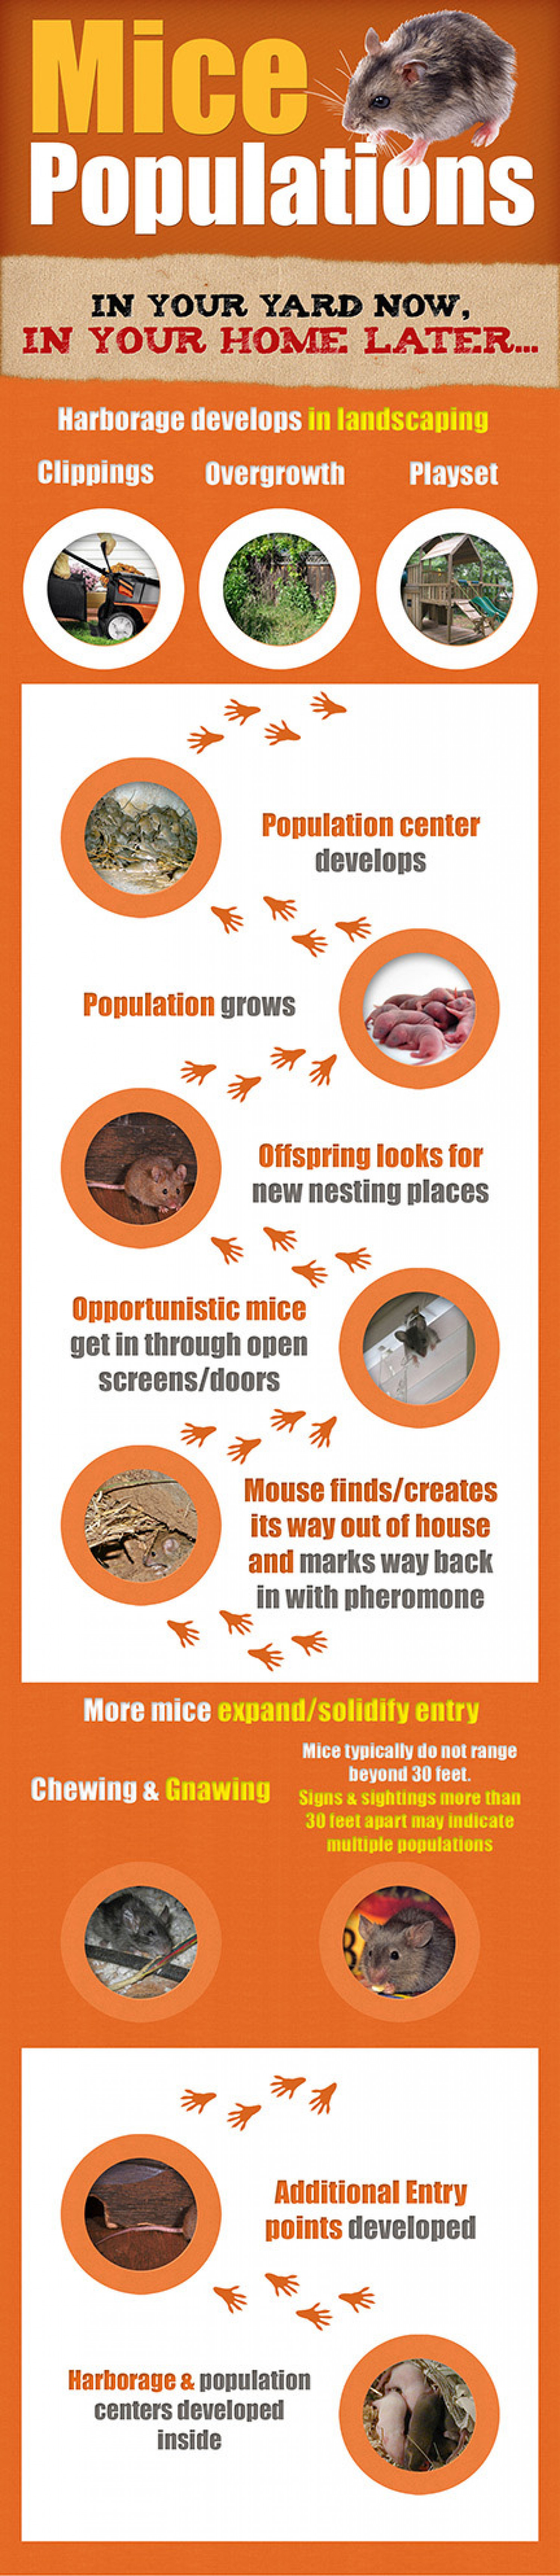 How Mice From Your Shed Move To Your Home Infographic